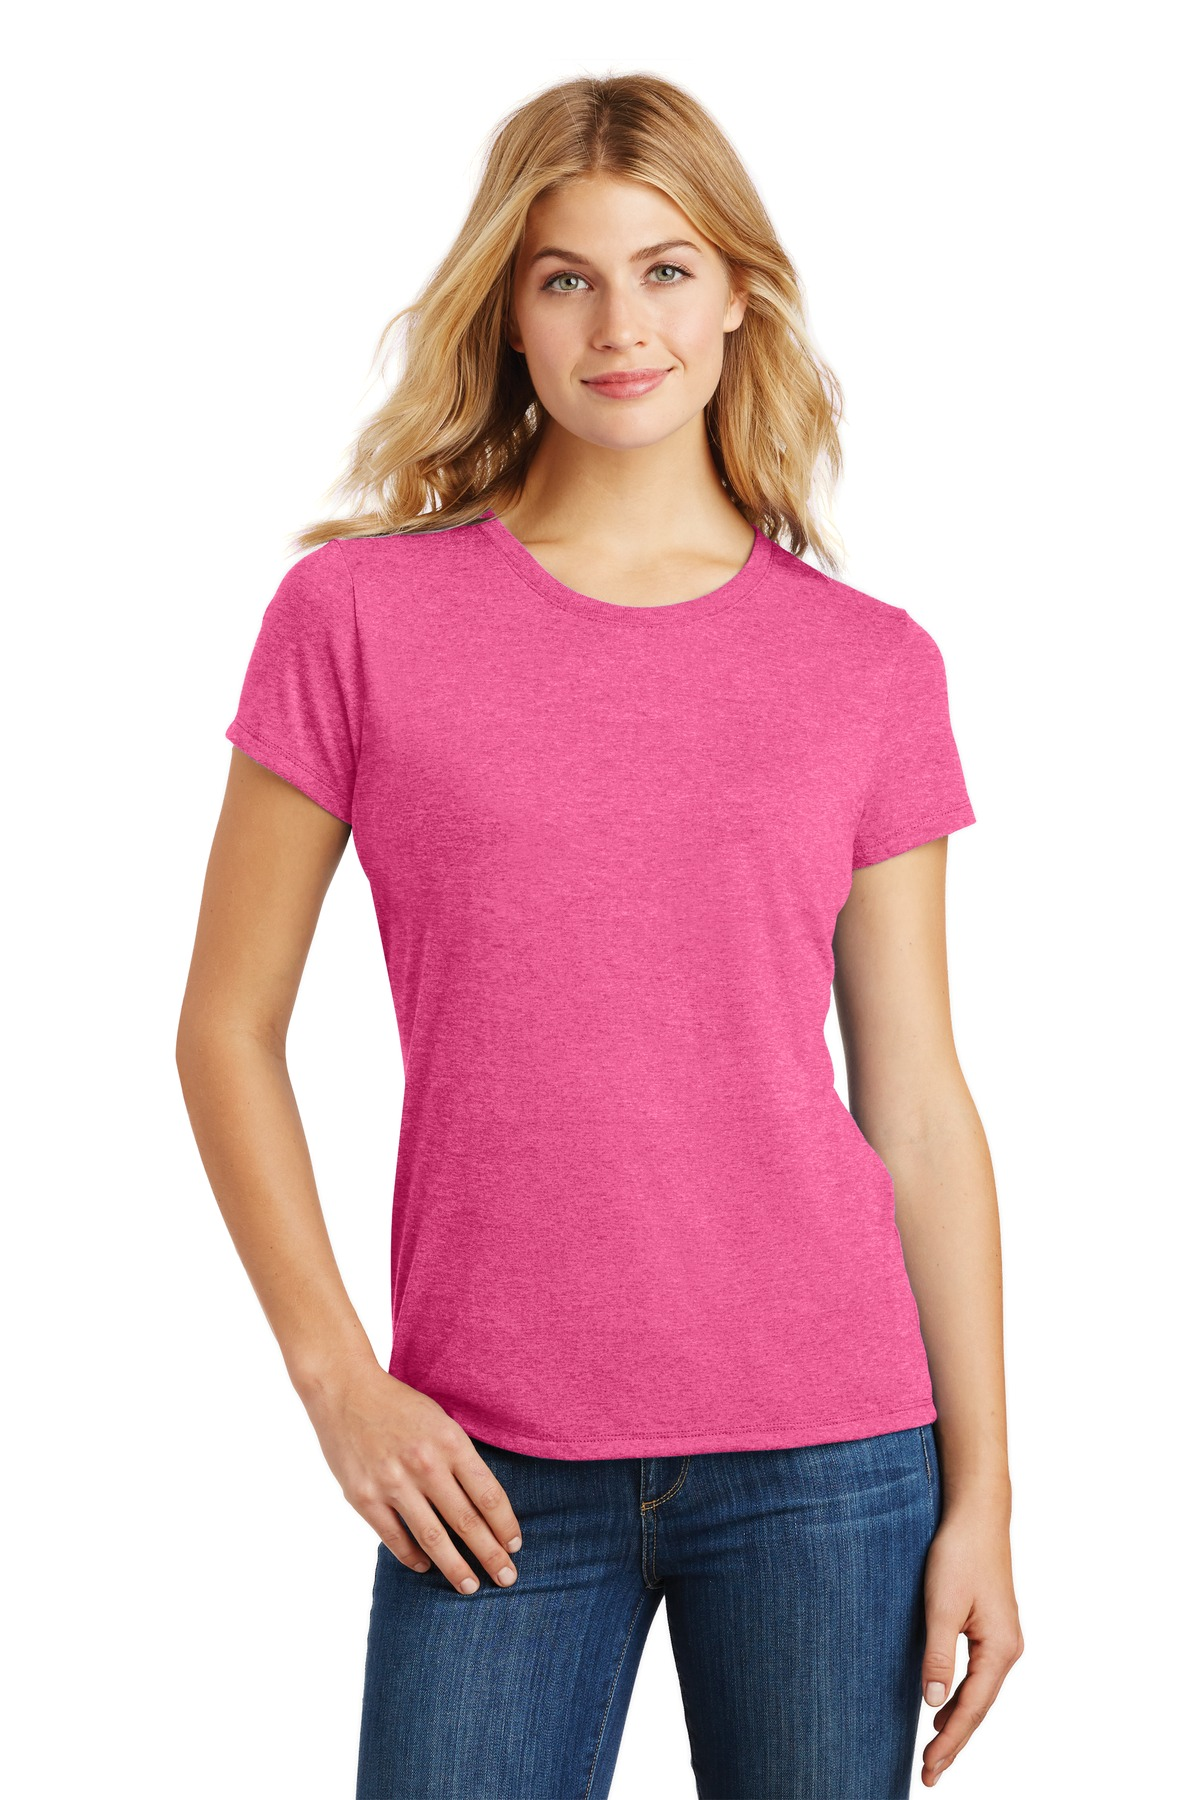 District  ®  Women's Perfect Tri ®  Tee. DM130L - Fuchsia Frost